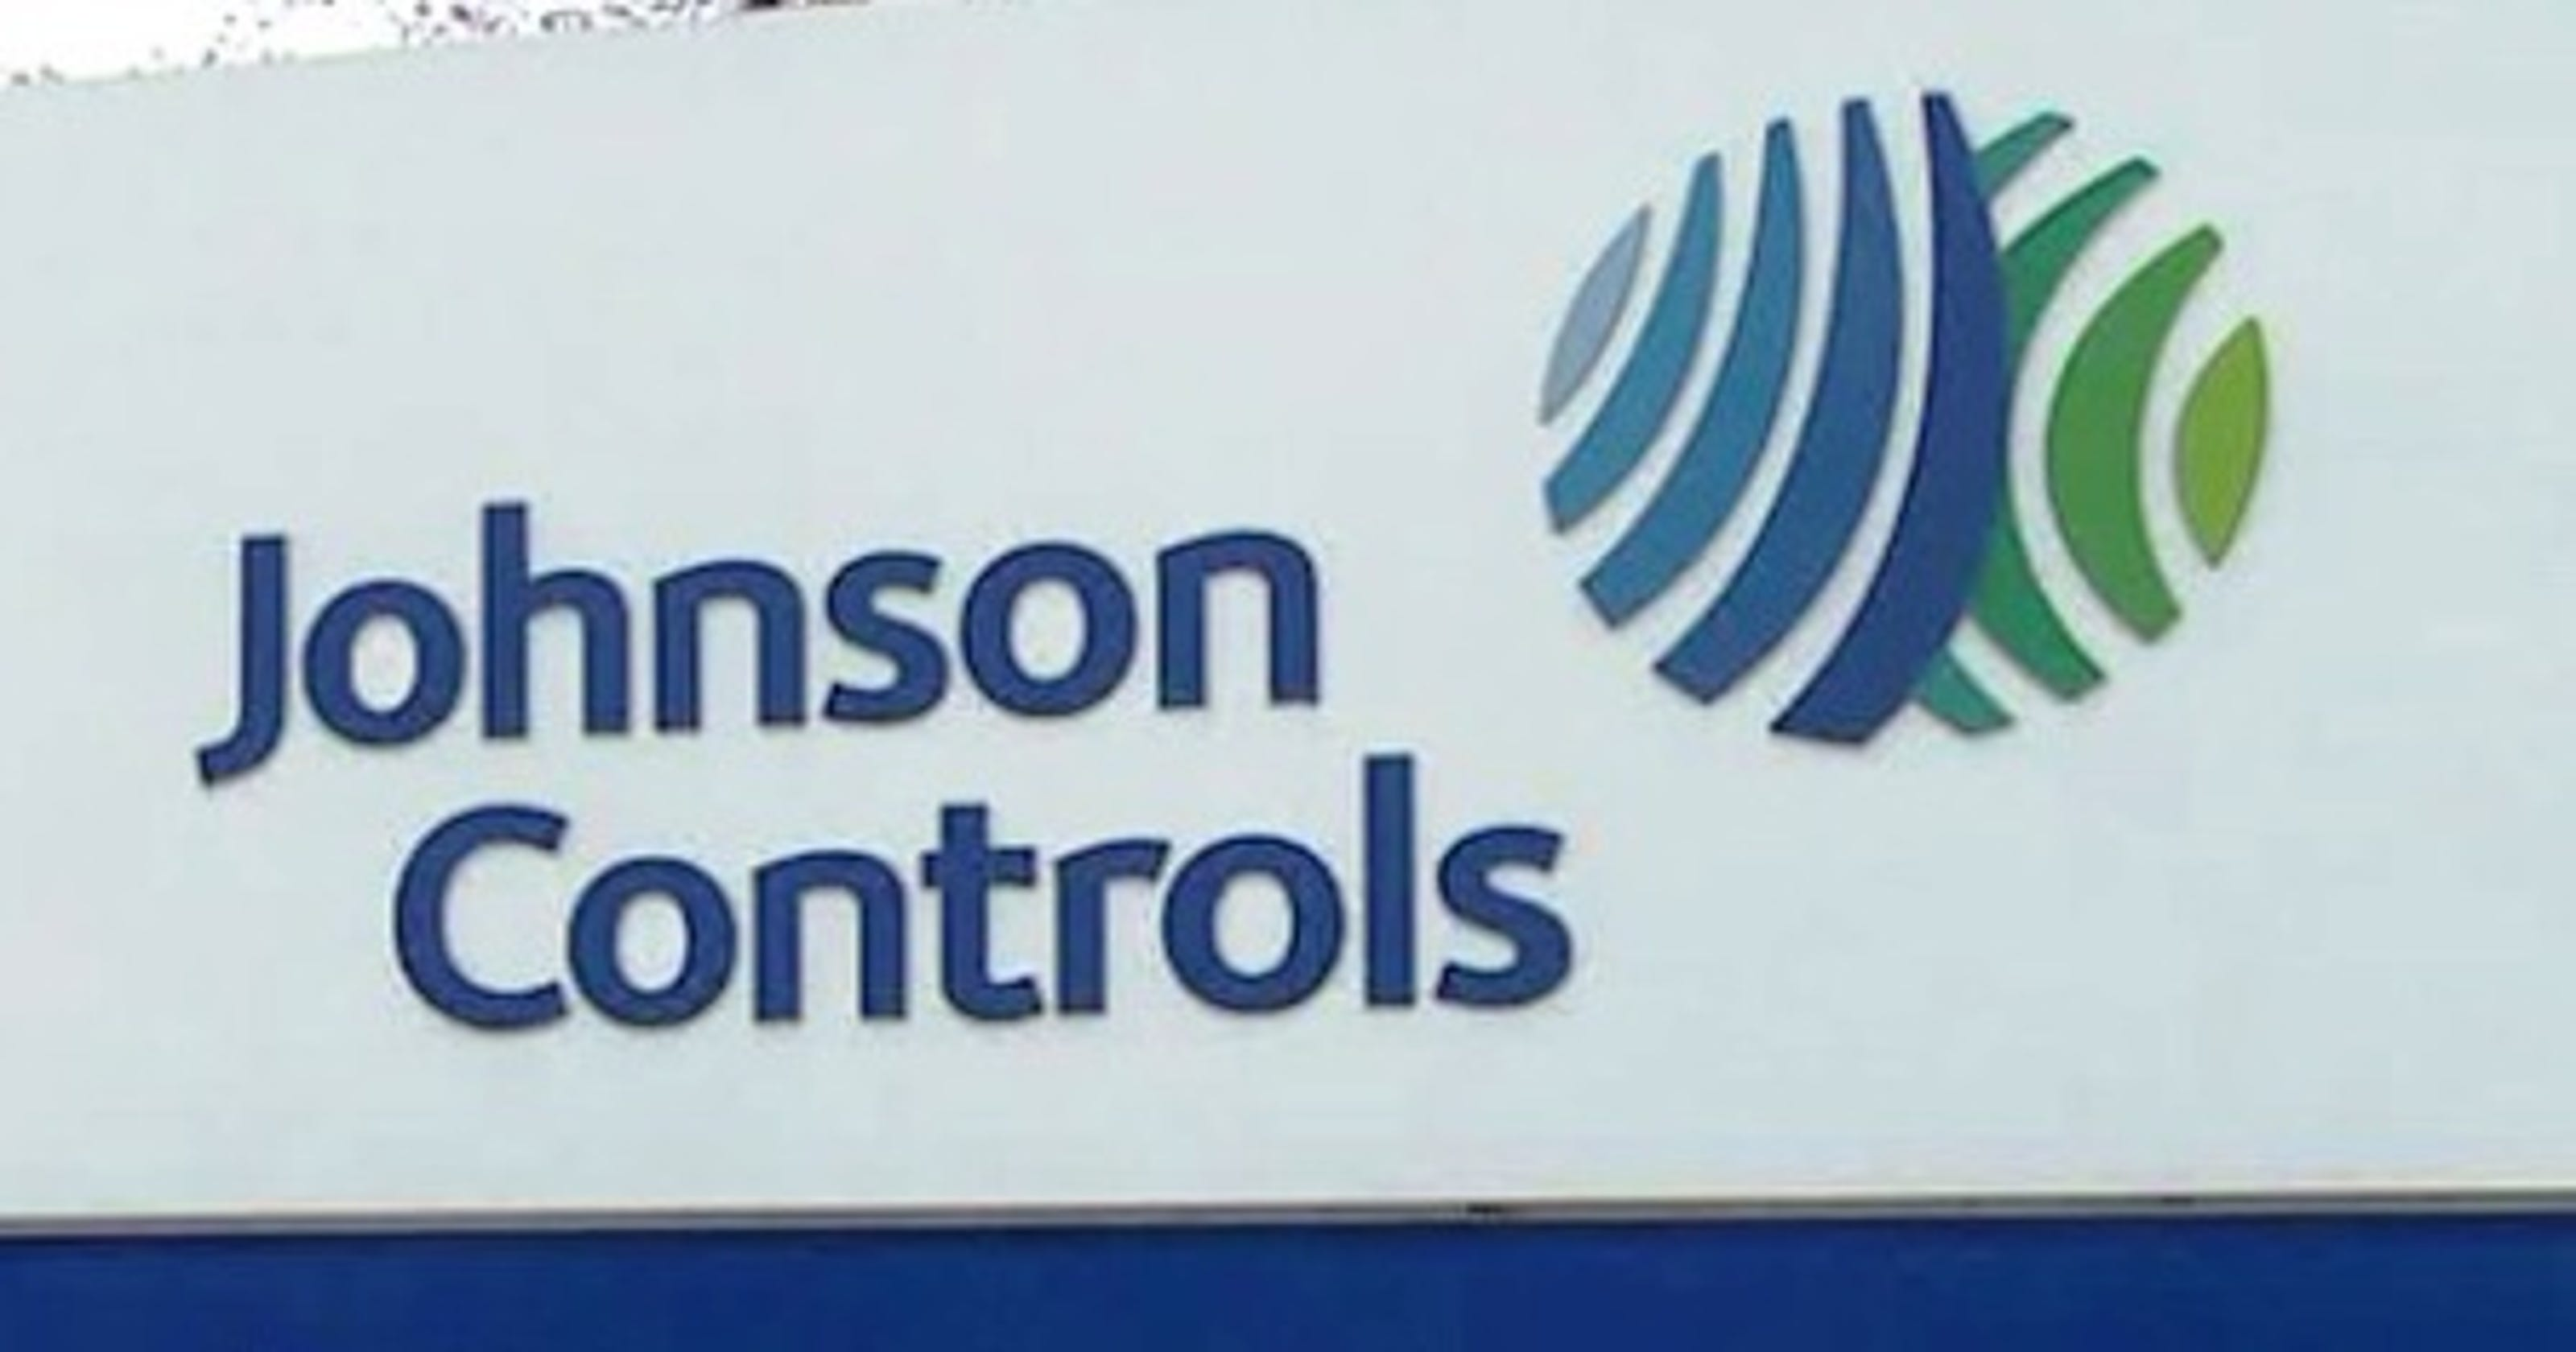 Johnson Controls in talks to merge with Tyco